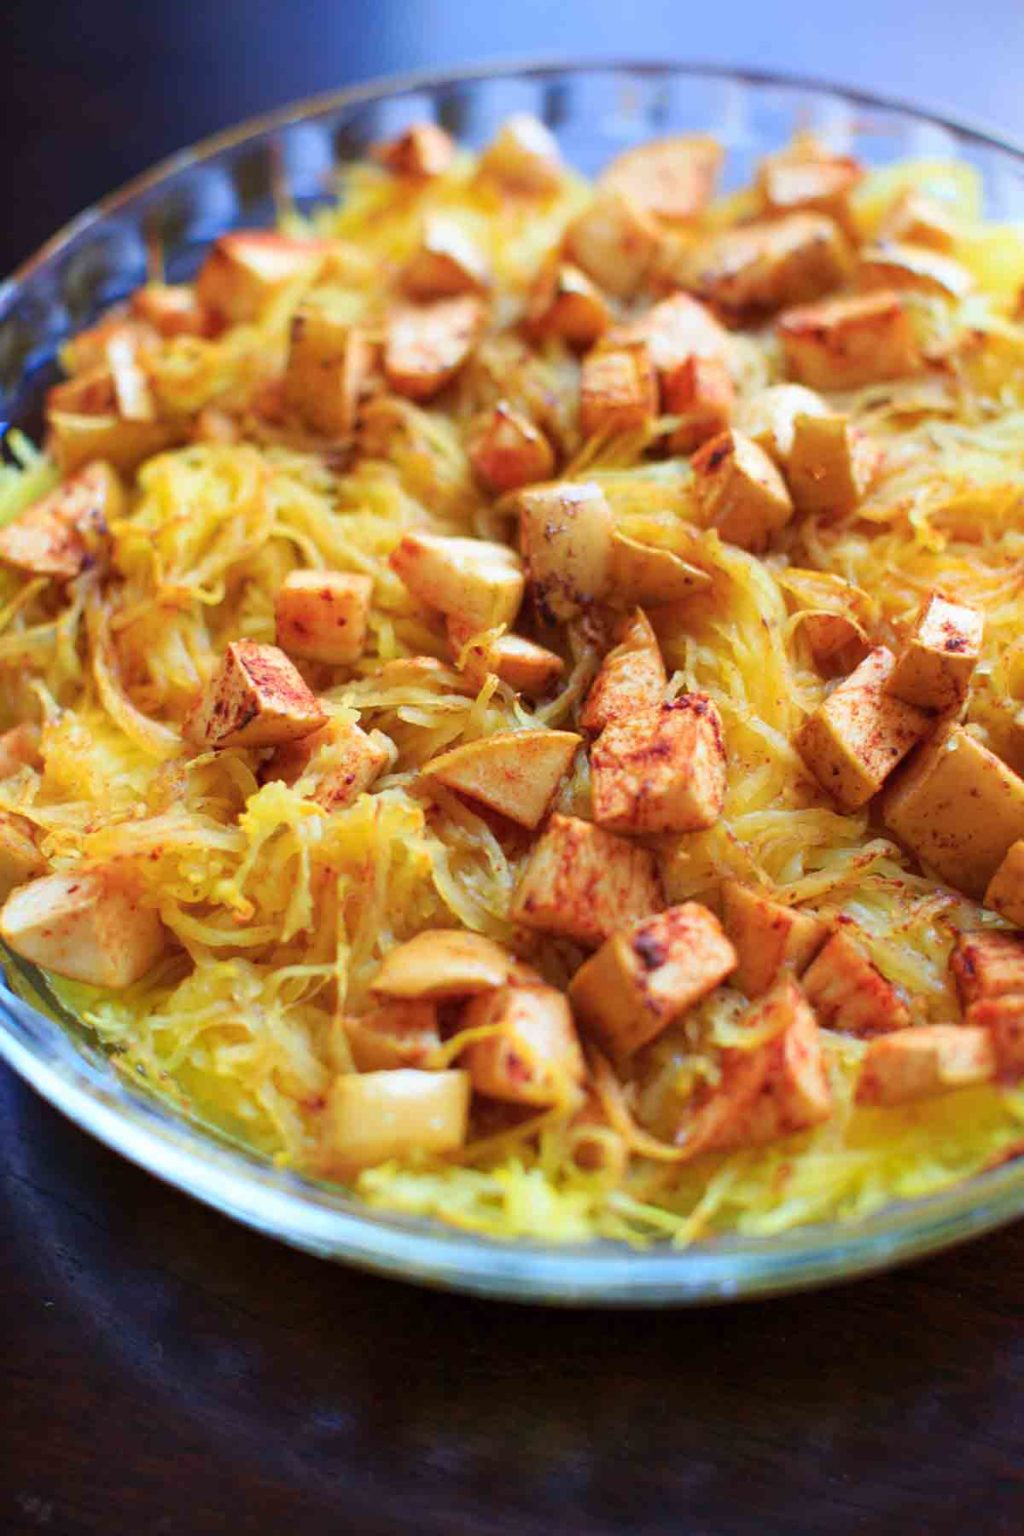 Maple Apple Spaghetti Squash Bake - a vegan friendly, gluten free veggie side dish that is great for family dinners and holidays.